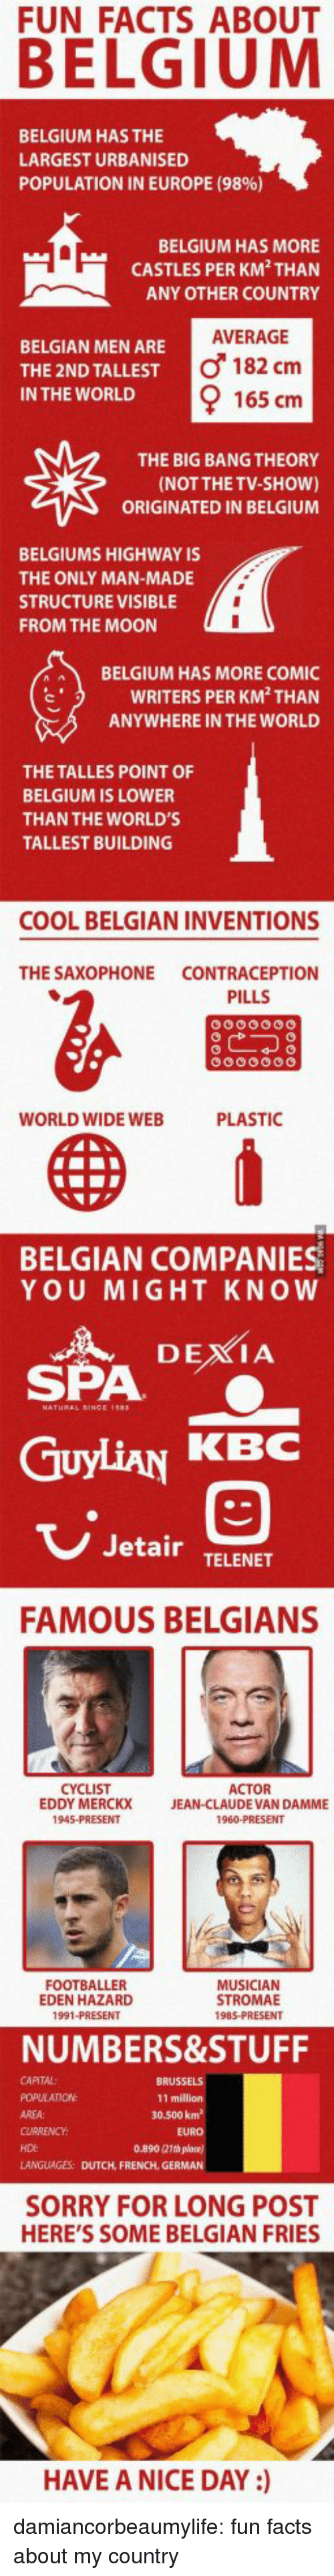 inventions: FUN FACTS ABOUT  BELGIUM HAS THE  LARGEST URBANISED  POPULATION IN EUROPE (9896)  BELGIUM HAS MORE  CASTLES PER KM THAN  ANY OTHER COUNTRY  AVERAGE  BELGIAN MEN ARE  THE 2ND TALLEST  IN THE WORLD  o 182 cm  165 cm  THE BIG BANG THEORY  (NOT THE TV-sHoW)  ORIGINATED IN BELGIUM  BELGIUMS HIGHWAY IS  THE ONLY MAN-MADE  STRUCTURE VISIBLE  FROM THE MOON  BELGIUM HAS MORE COMIC  WRITERS PER KM THAN  ANYWHERE IN THE WORLD  THE TALLES POINT OF  BELGIUM IS LOWER  THAN THE WORLD'S  TALLEST BUILDING  COOL BELGIAN INVENTIONS  THE SAXOPHONE CONTRACEPTION  PILLS  WORLD WIDE WEB  PLASTIC  BELGIAN COMPANIES  YOU MIGHT KNOW  SPA  GuyLiAN KBC  3  Jetair TELENET  FAMOUS BELGIANS  CYCLIST  EDDY MERCKX  ACTOR  JEAN-CLAUDE VAN DAMME  FOOTBALLER  EDEN HAZARD  1991 PRESENT  MUSICIAN  STROMAE  NUMBERS&STUFF  CAPITAL:  11 million  30.500 kn  AREA:  EURO  0.890 21th plane)  LANGUAGES: DUTCH, FRENCH, GERMAN  HDI  SORRY FOR LONG POST  HERE'S SOME BELGIAN FRIES  HAVE A NICE DAY ) damiancorbeaumylife:  fun facts about my country